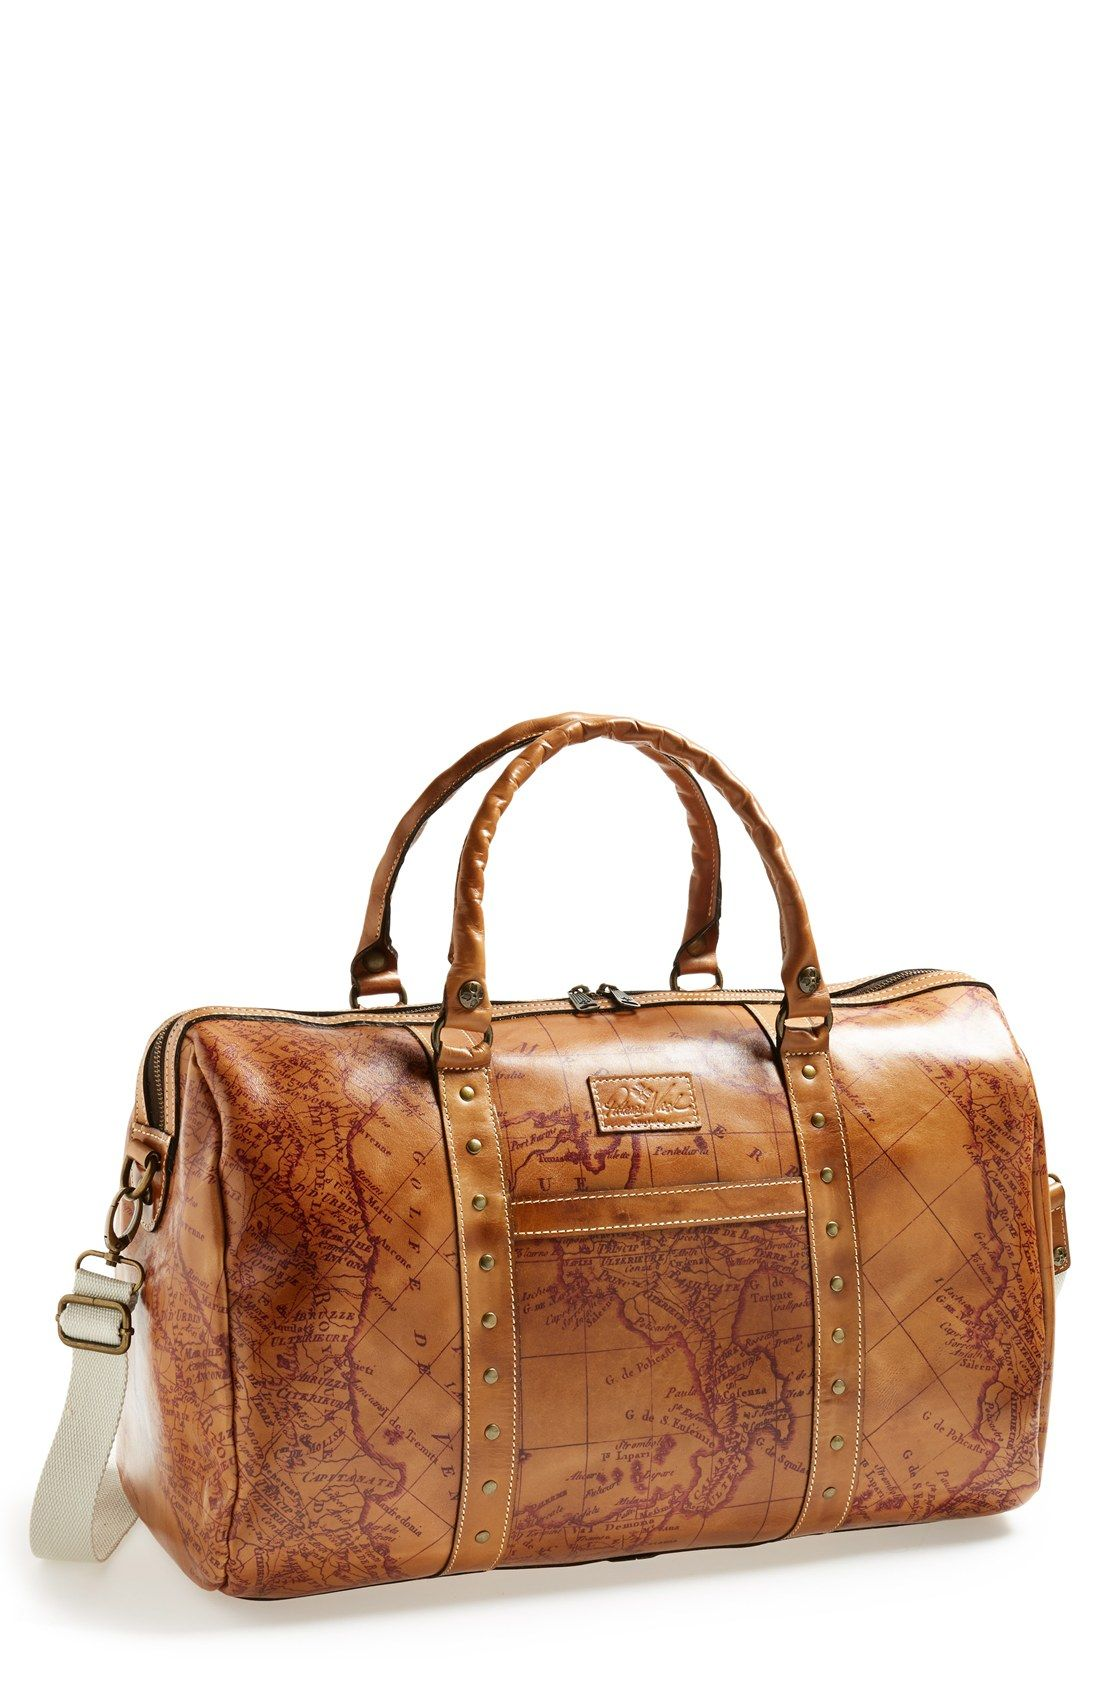 e1ba0bd7b Patricia Nash 'Milano' Weekend Bag | Good looks | Leather overnight ...